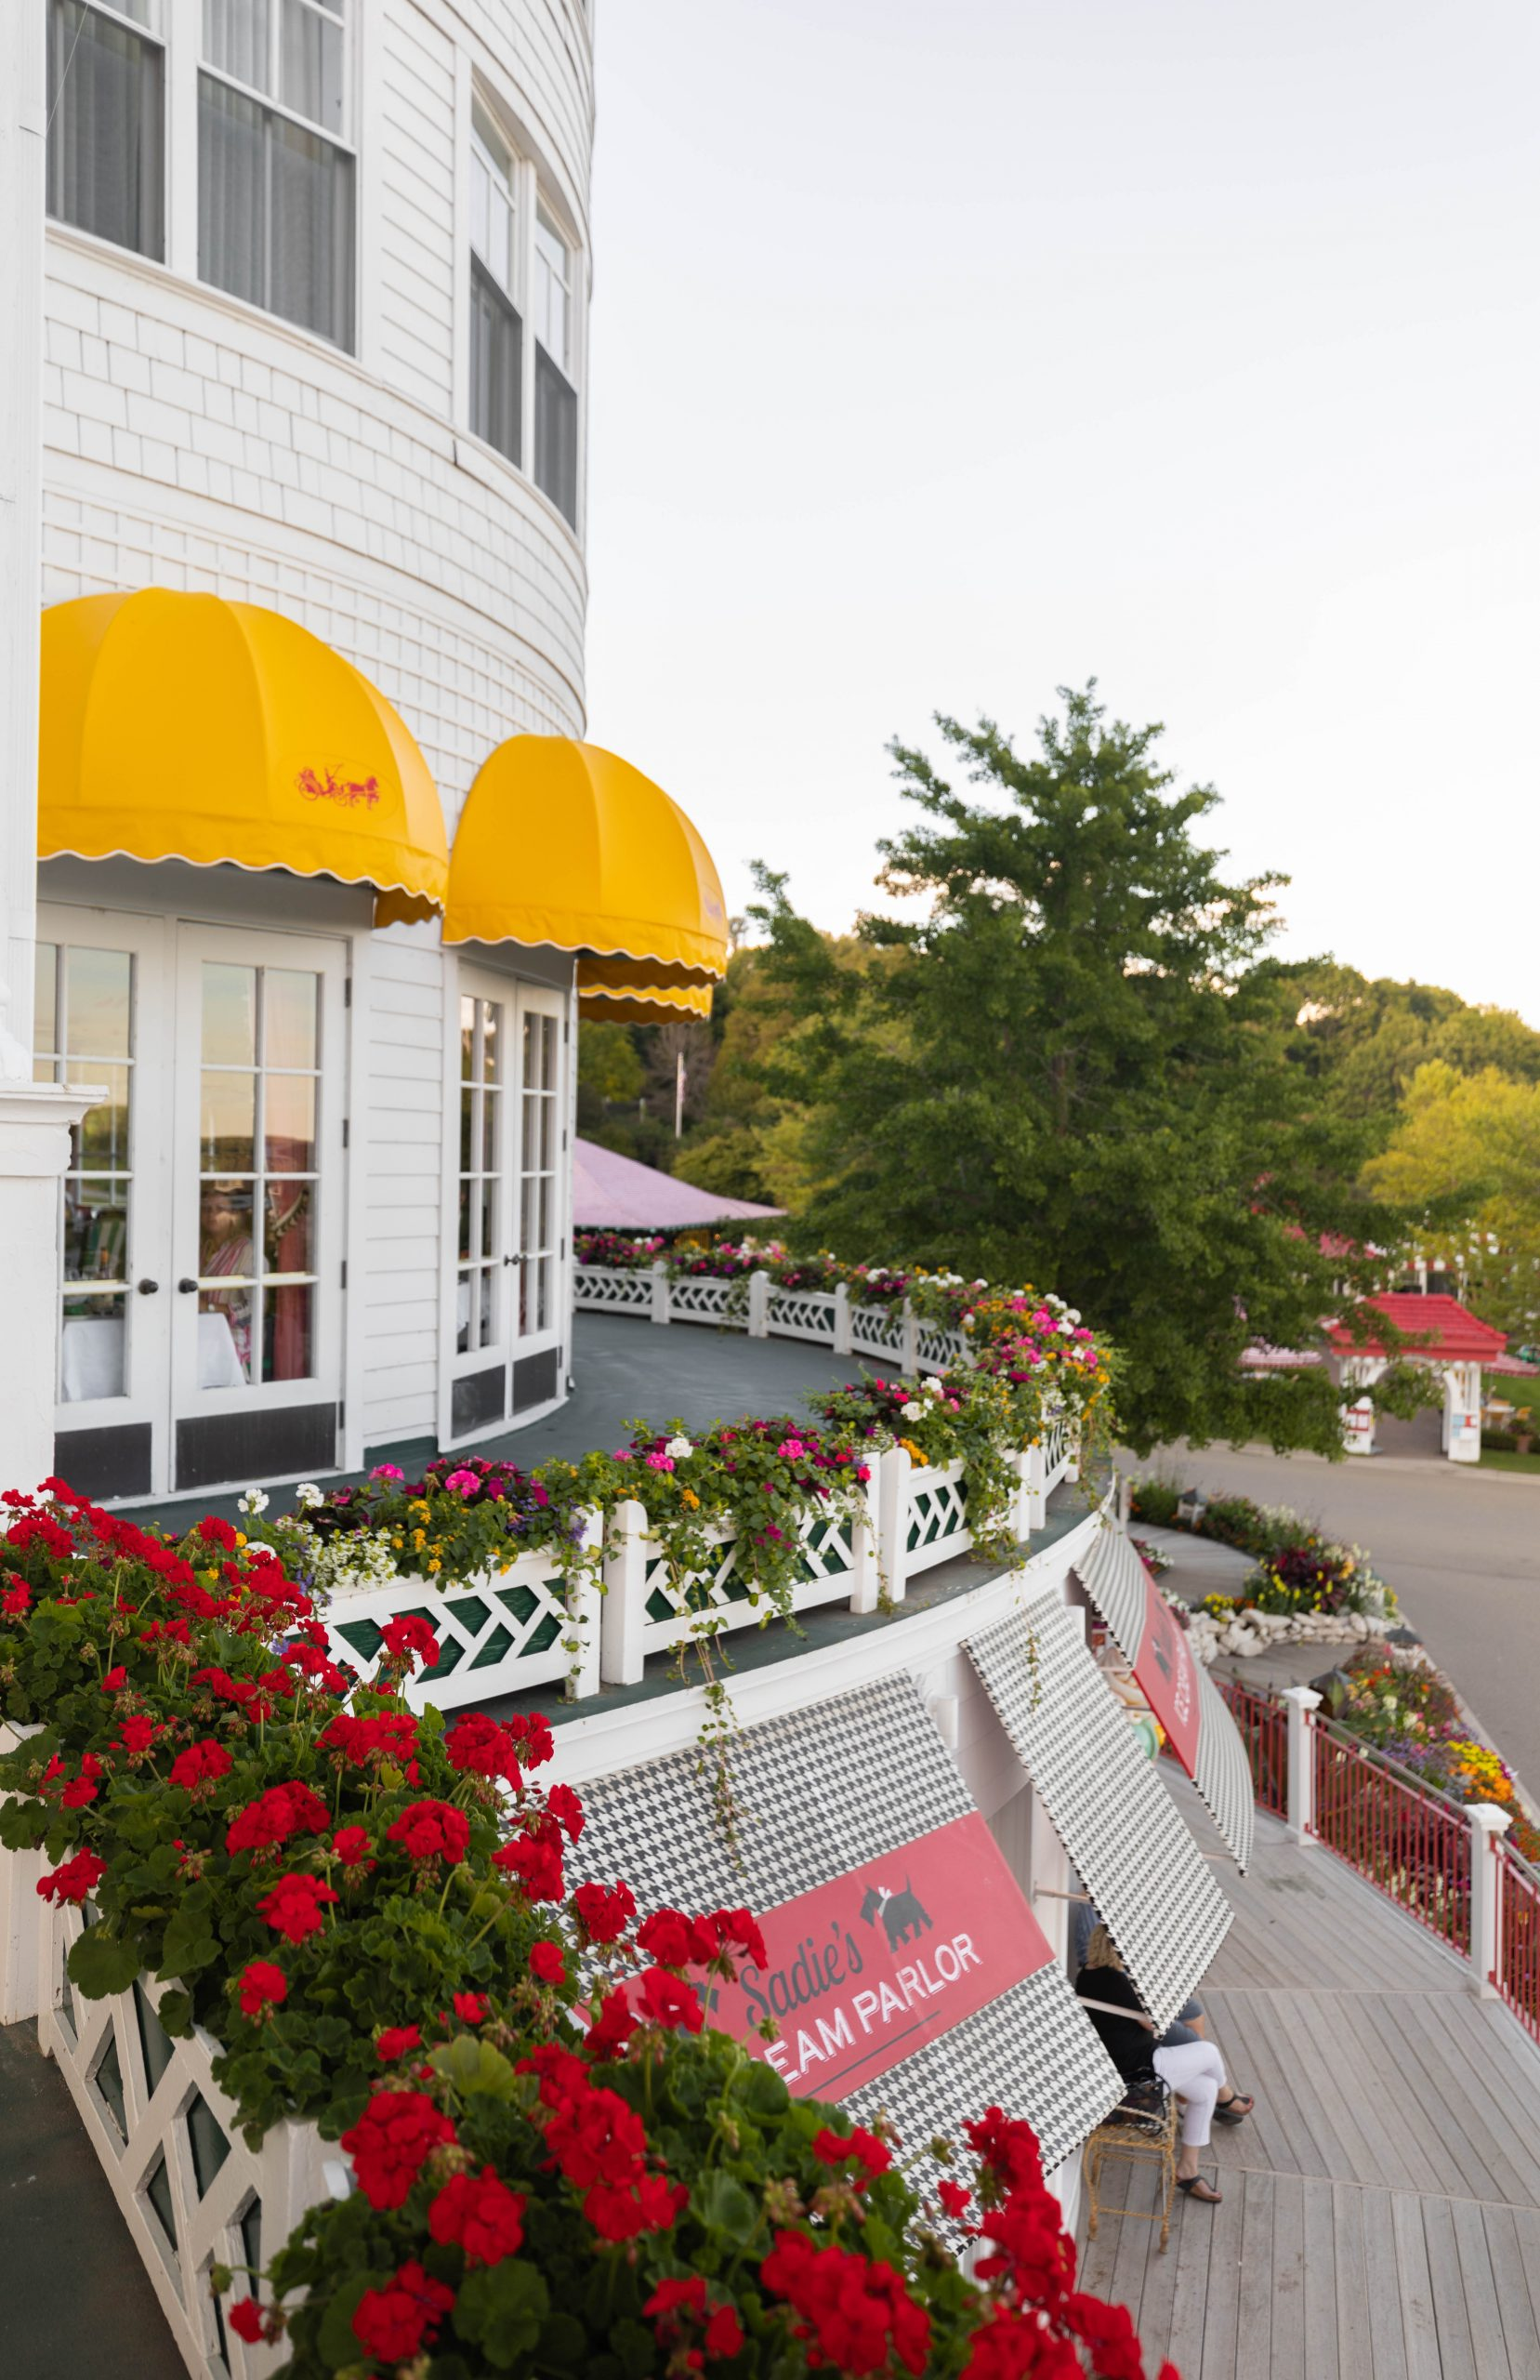 Sadie's Ice Cream Parlor Luxury Hotels of the World Grand Hotel on Mackinac Island in Northern Michigan Written and Photographed by Annie Fairfax